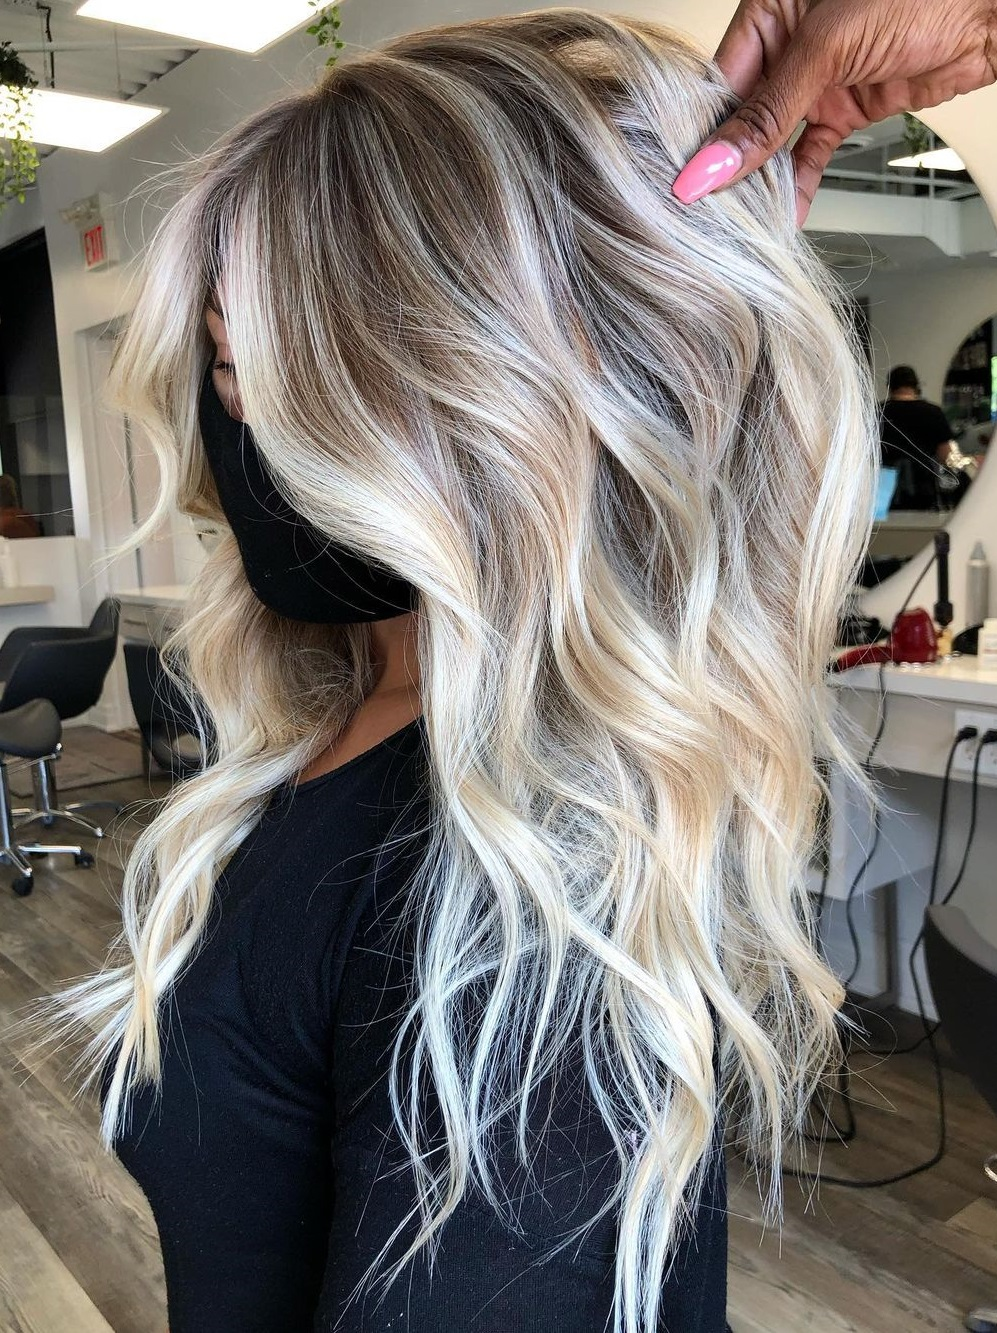 Bright Blonde Balayage with Waves